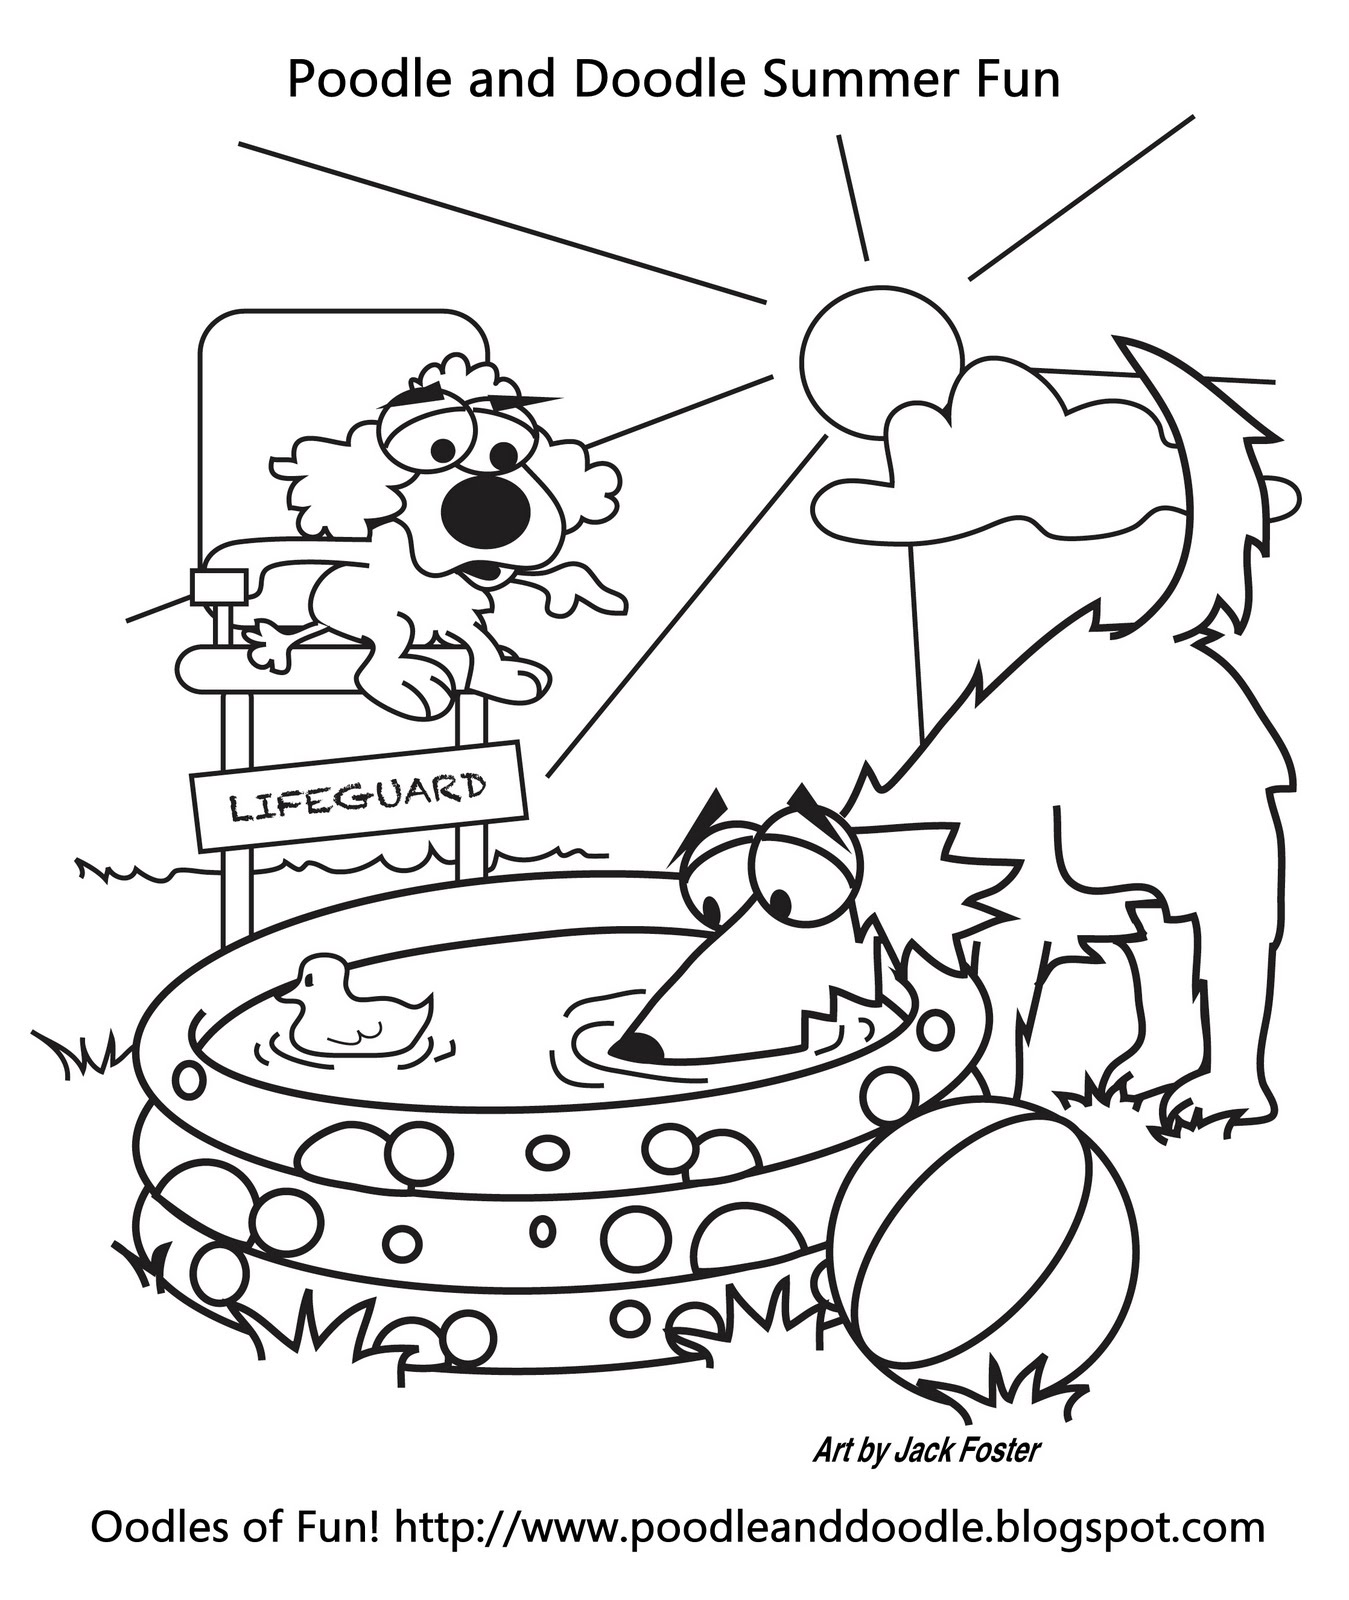 Oodles of Fun: Oodles of Summer Fun - Coloring Page